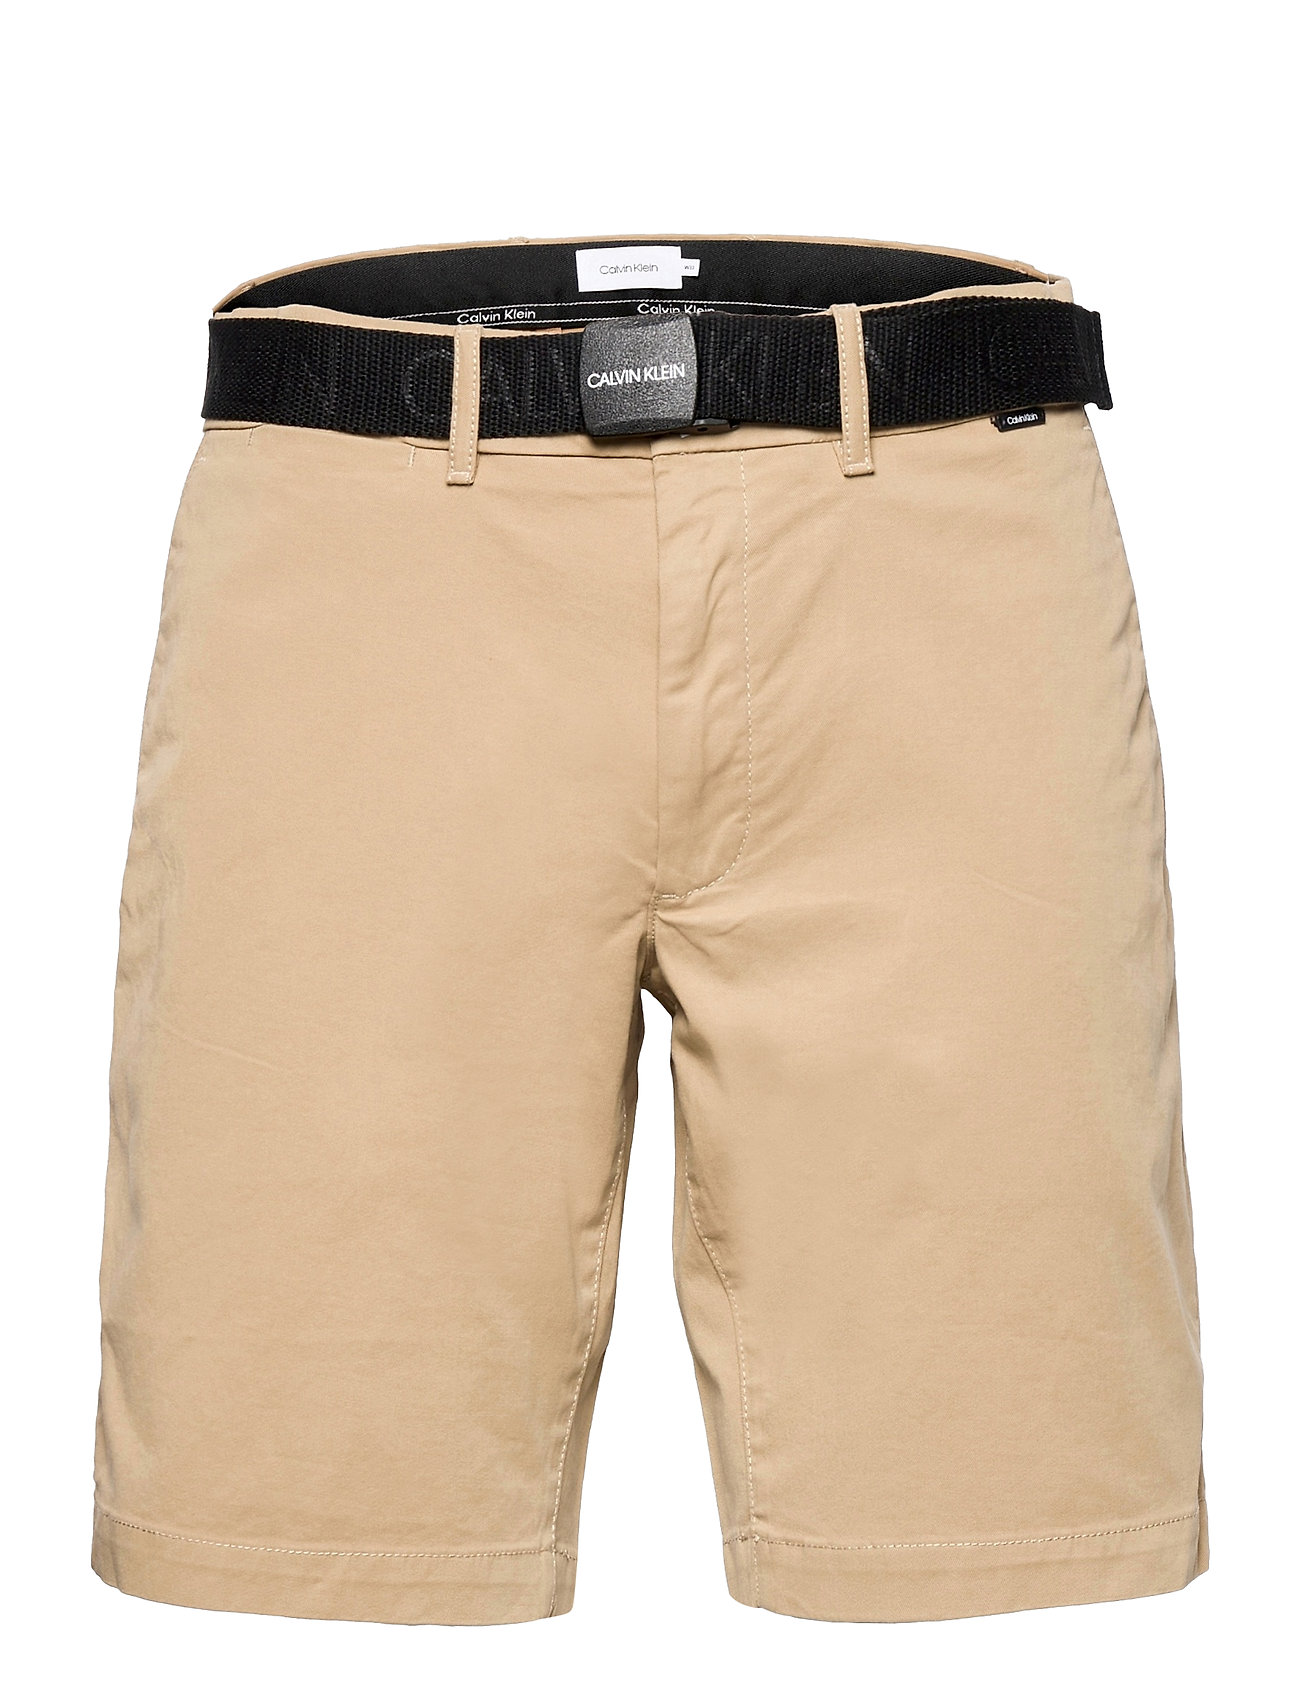 Image of Garment Dye Belted Shorts Shorts Chinos Shorts Beige Calvin Klein (3510547891)